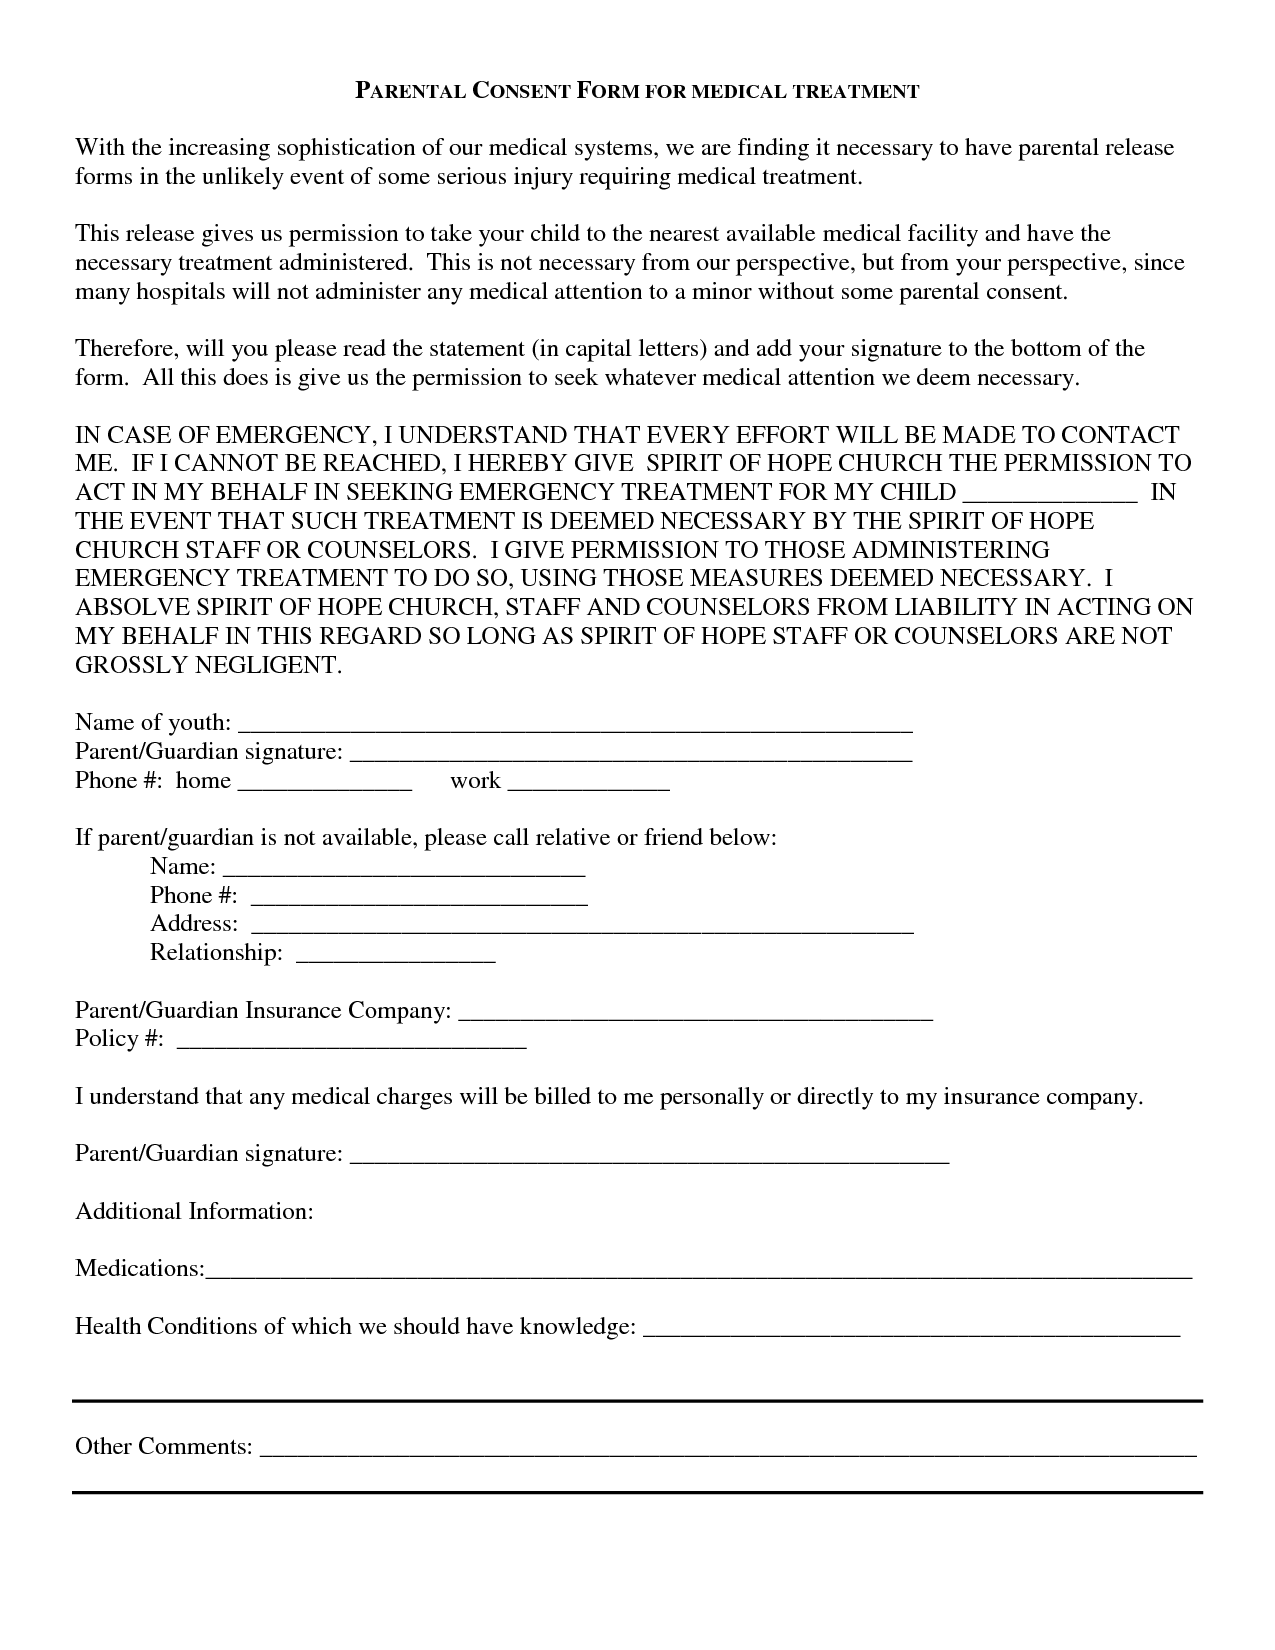 Superb Medical Consent Release Form | Bagnas   Parental Consent Form For Medical  Treatment